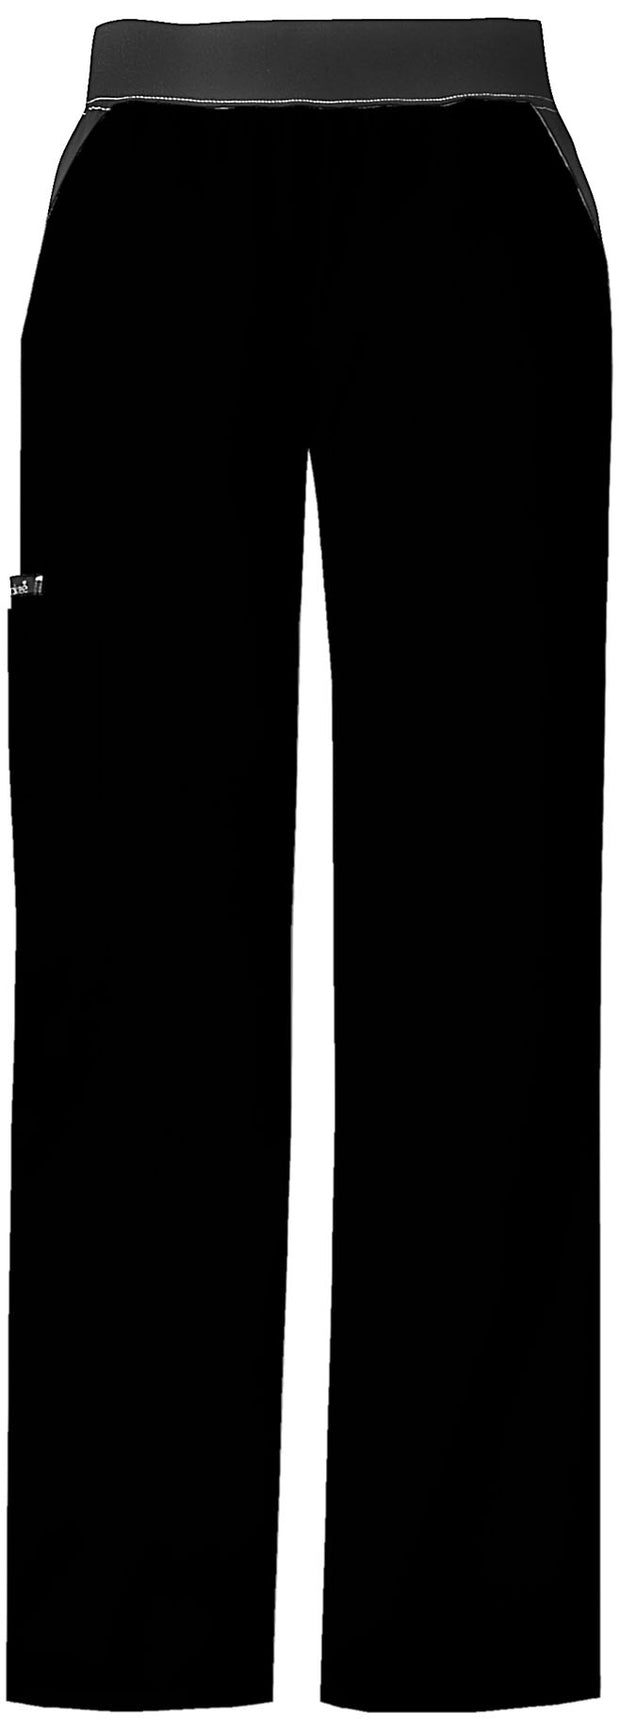 Cherokee Flexibles (Contrast Black) Women's Mid-Rise Knit Waist Pull-On Pant - 1031T  Tall